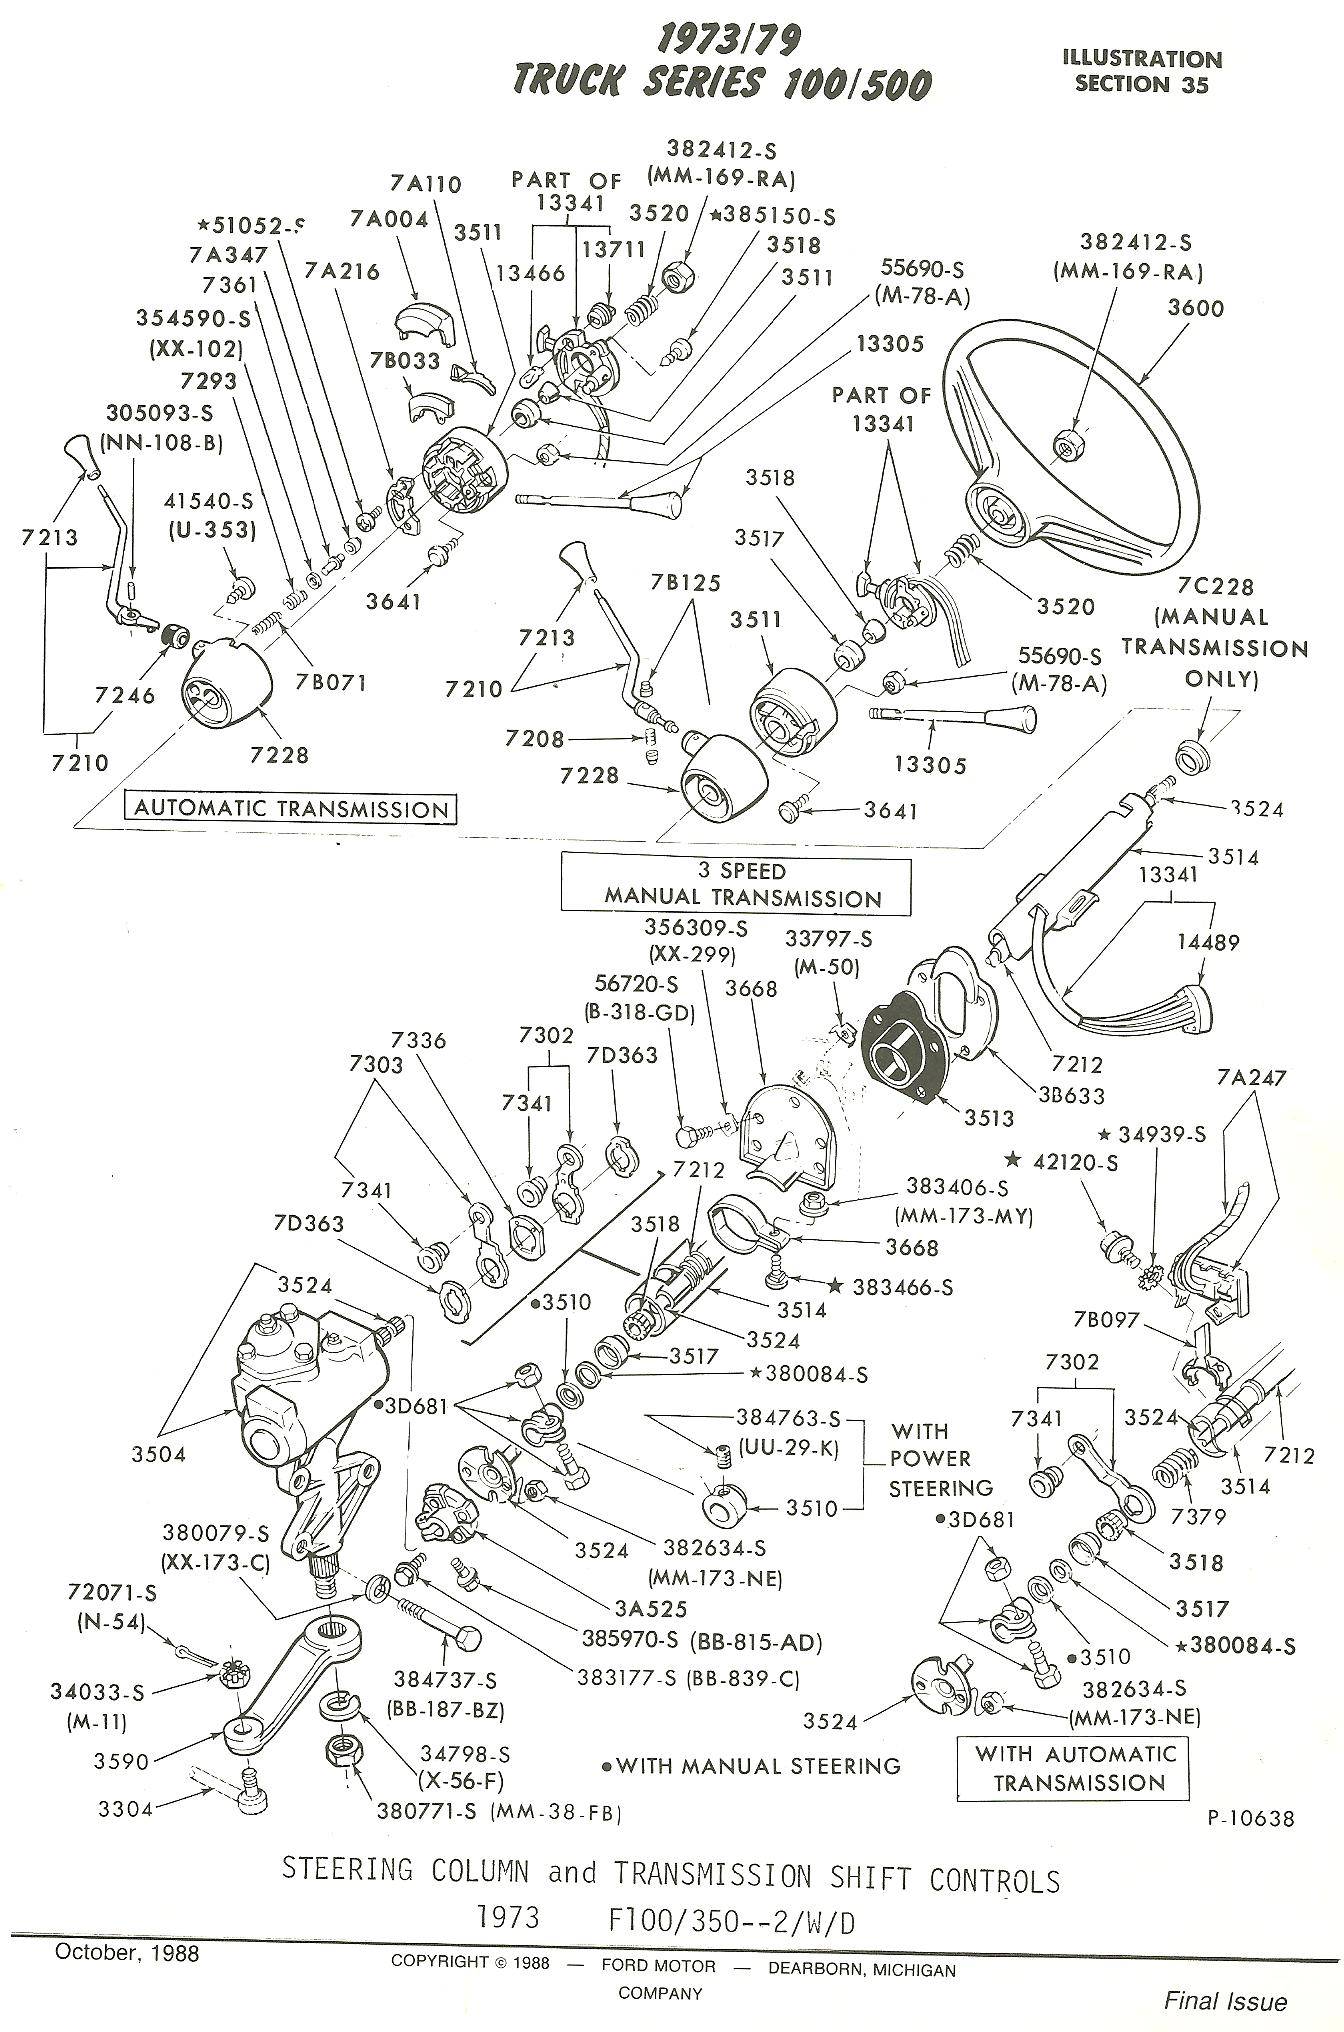 1974 ford f100 steering column wiring diagram